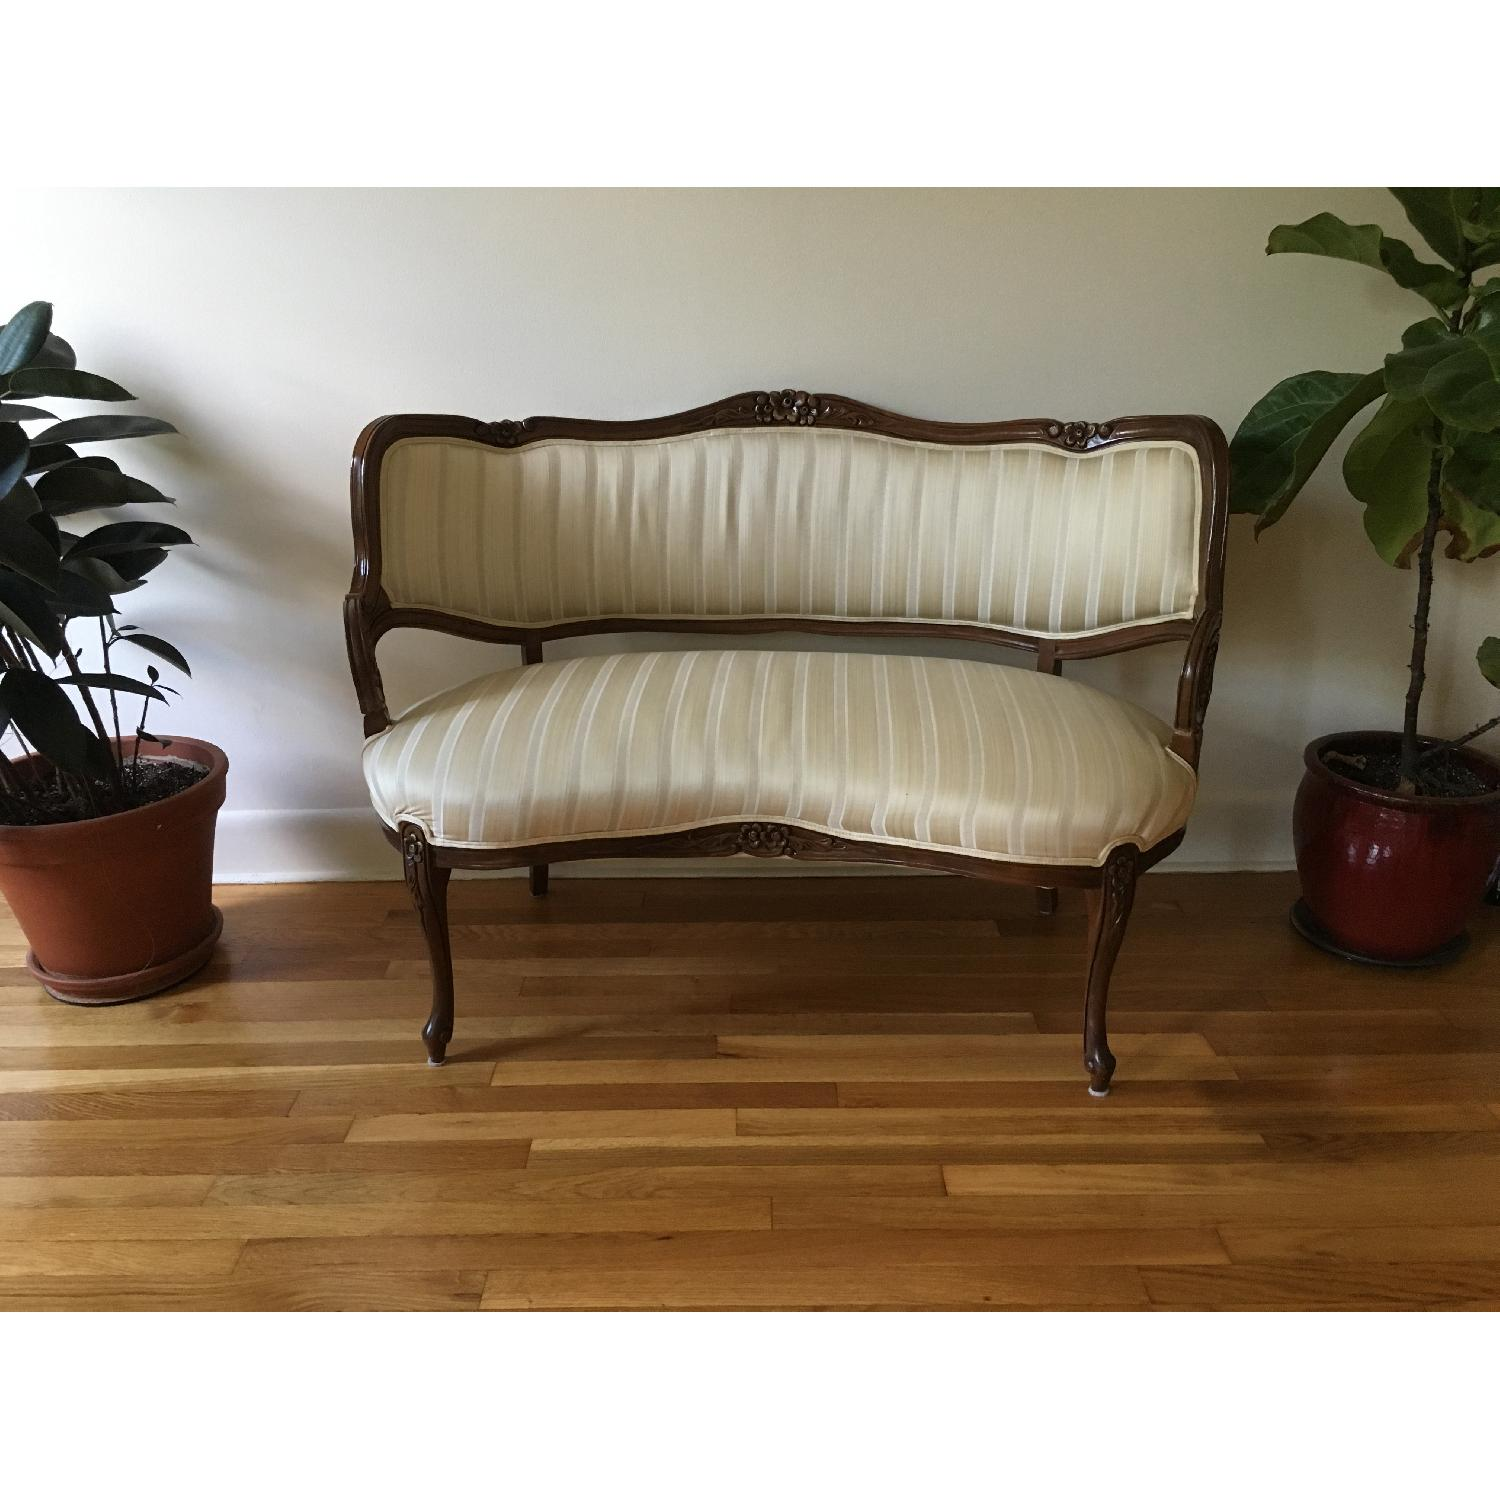 Vintage French-Style Loveseats - image-1